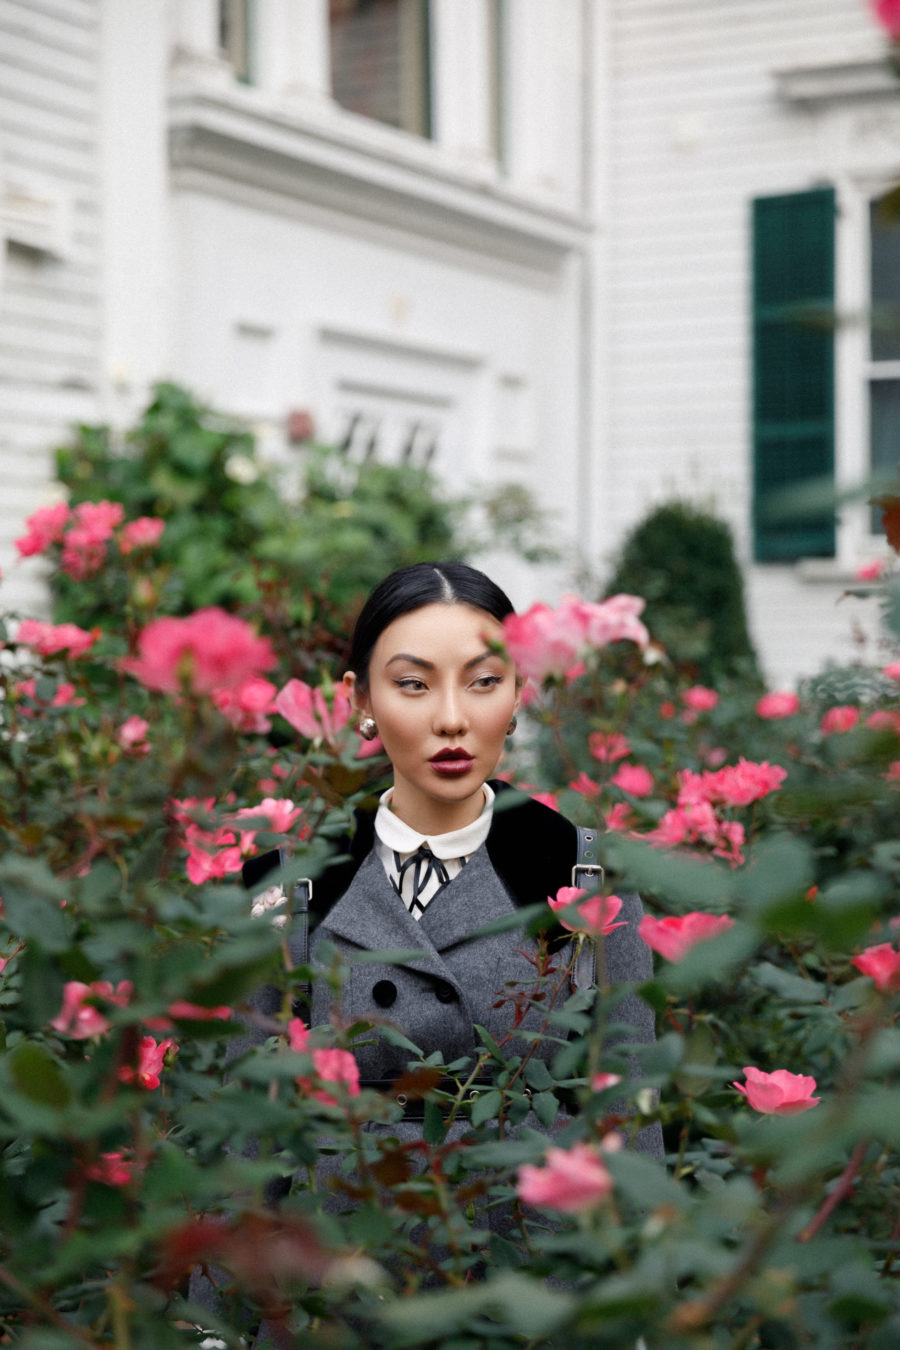 jessica wang wears gray gucci suit in a flower garden and shares how to set goals and achieve them // Jessica Wang - Notjessfashion.com